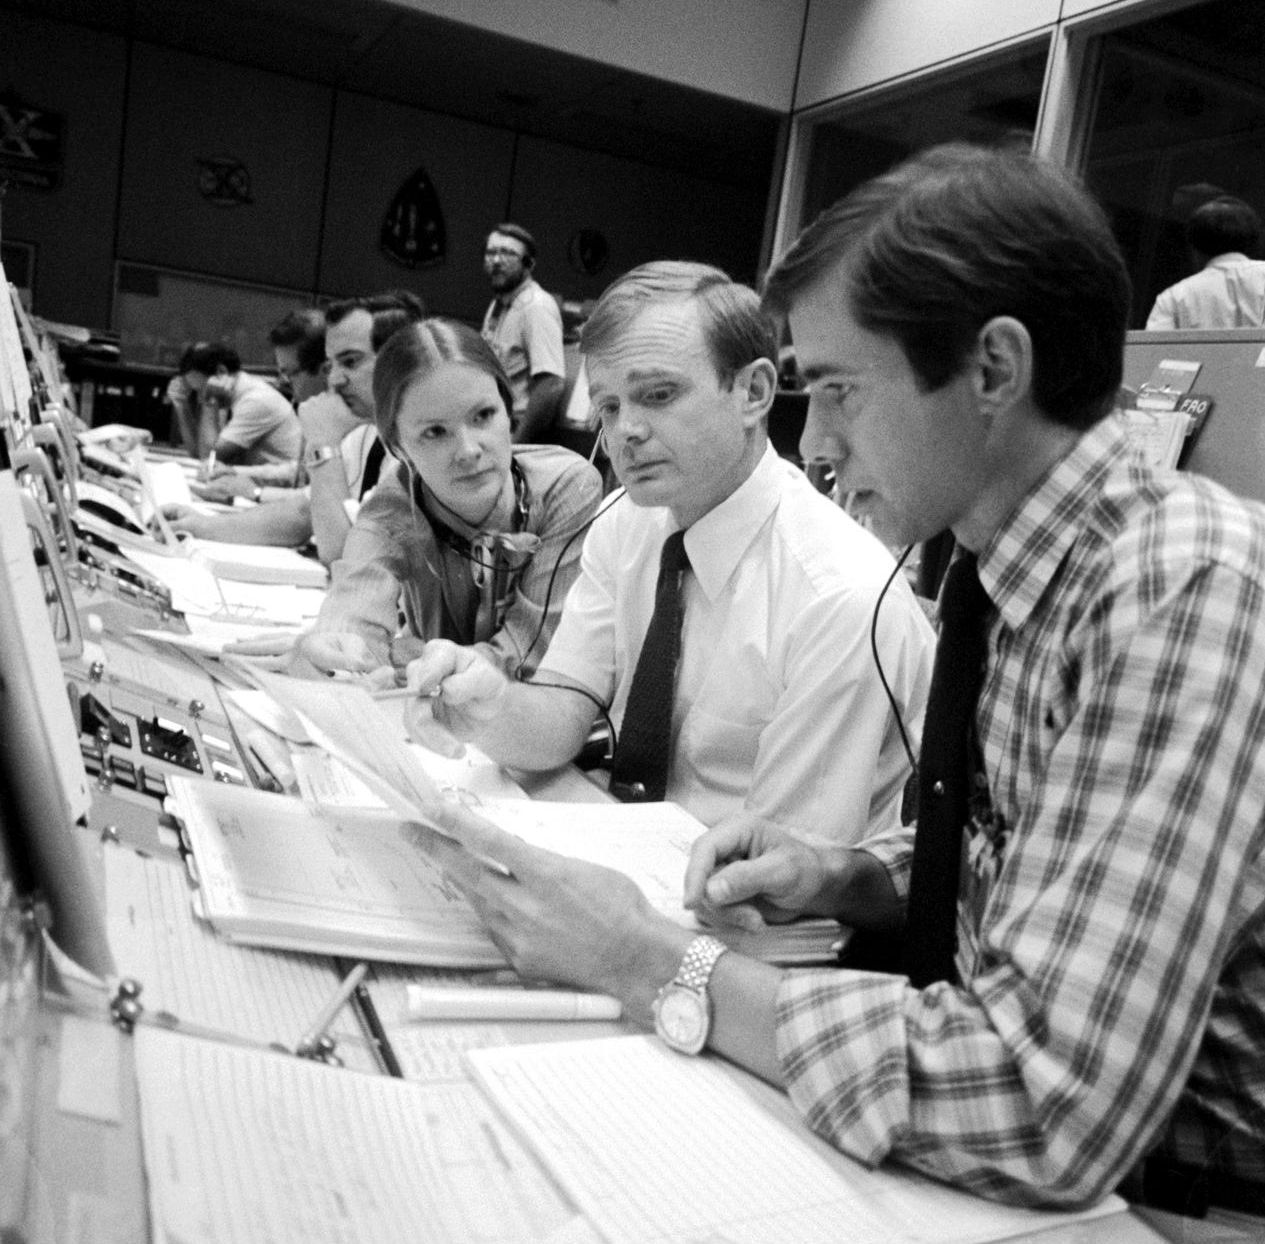 Astronaut Brewster H. Shaw Jr., right, Astronaut Roy D. Bridges Jr. and Marianne J. Dyson are pictured during STS-4 in 1983.